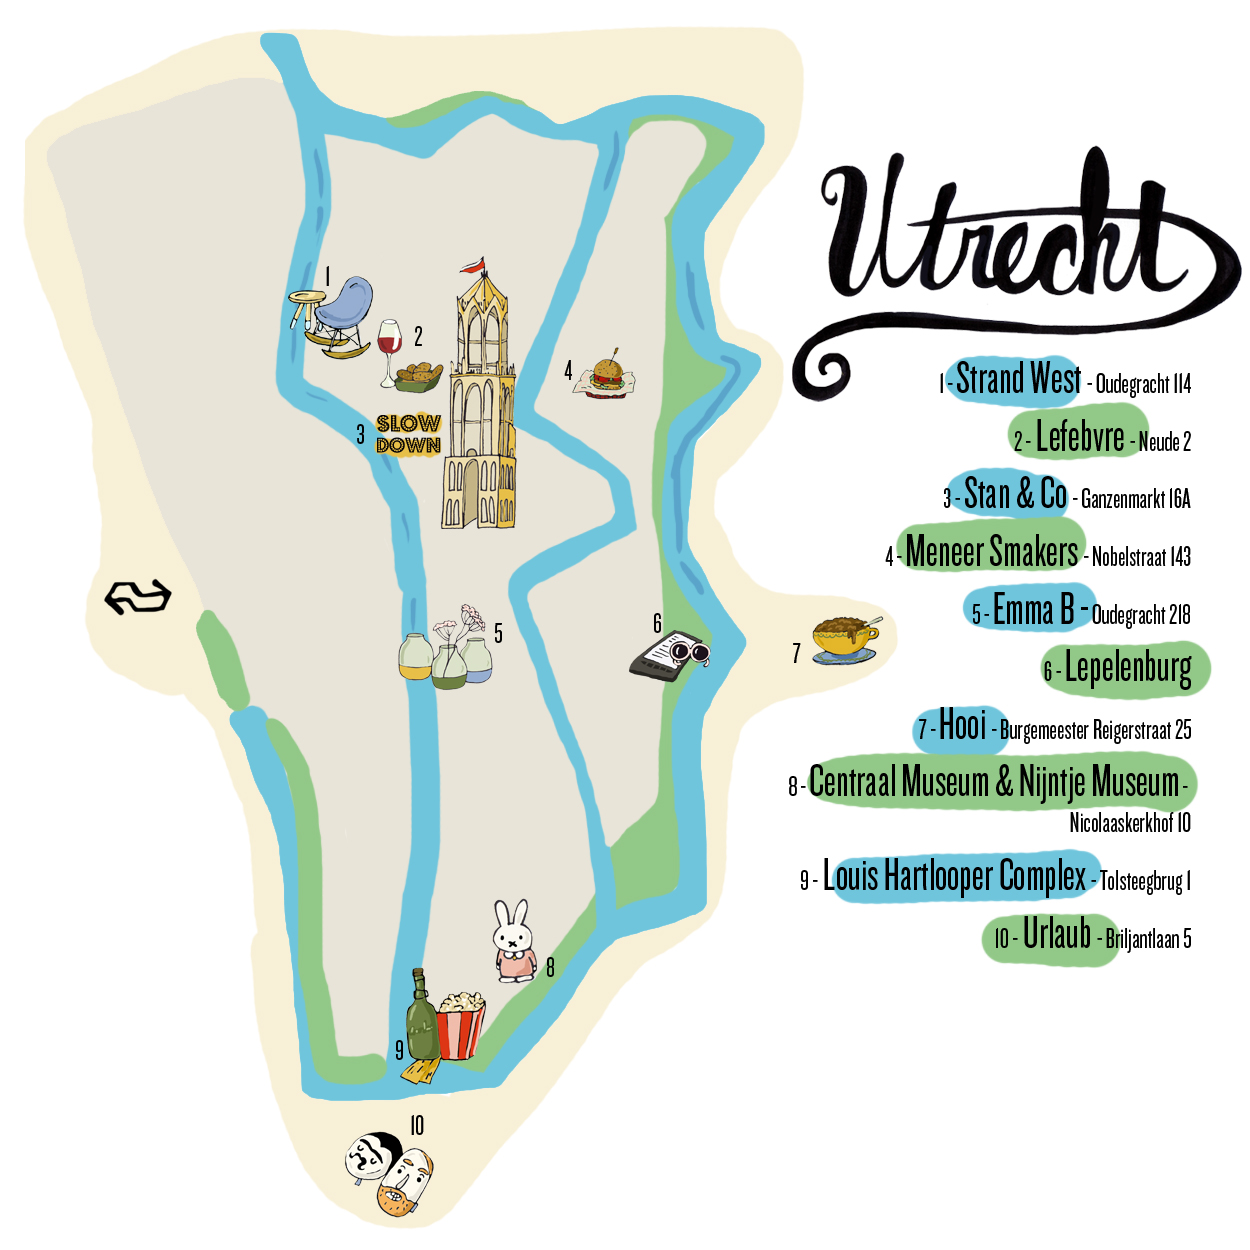 Utrecht city guide © Anna Denise Floot